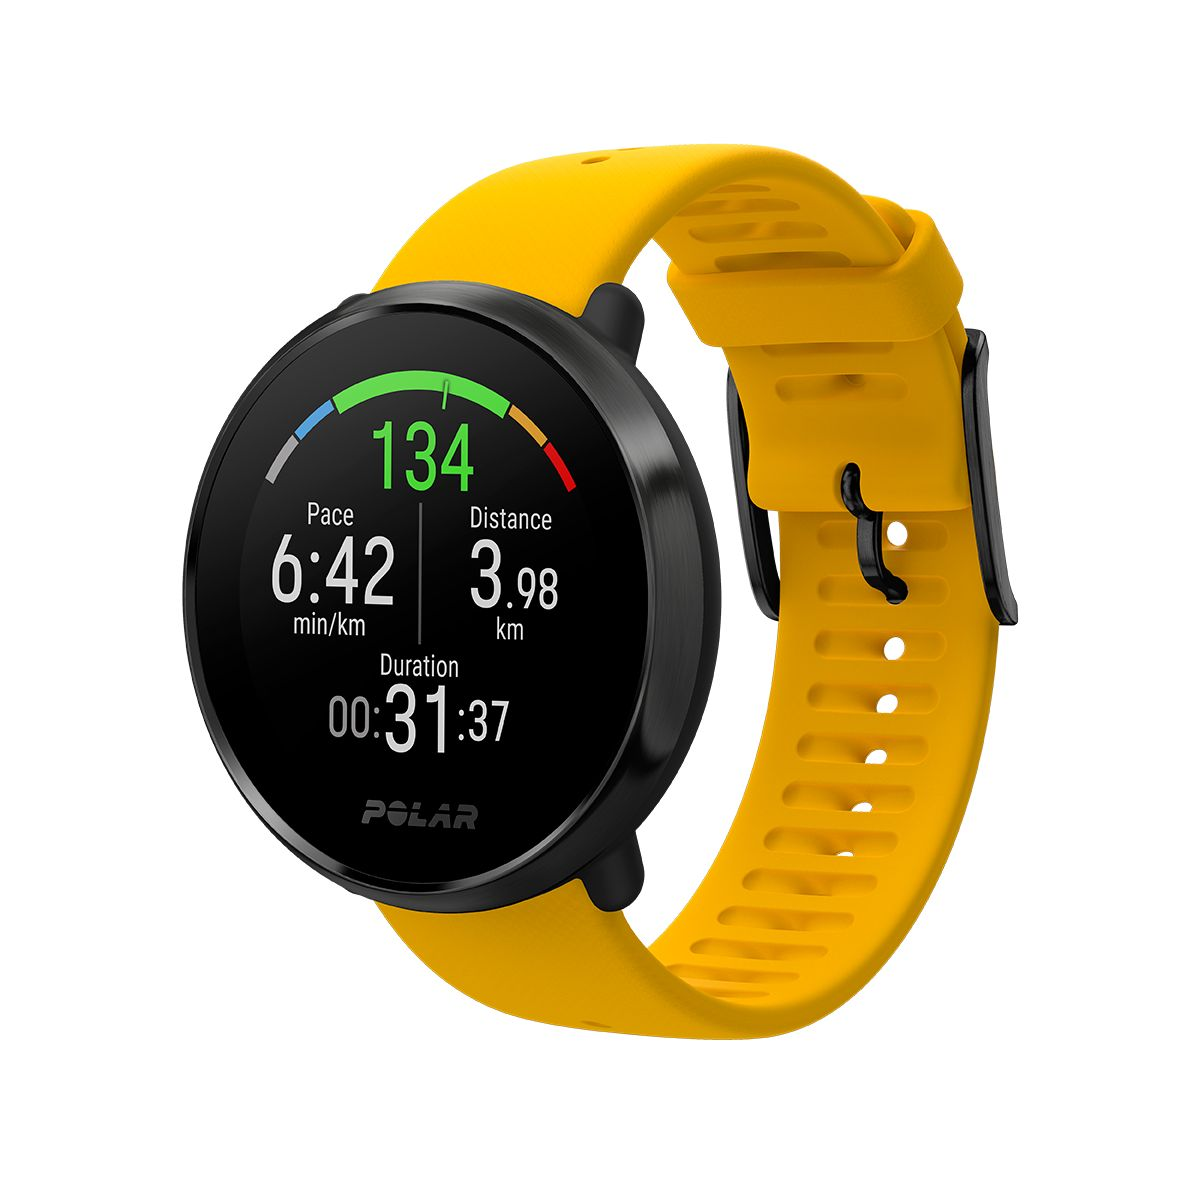 Ignite GPS Allround Training Watch with Heart Rate Monitor